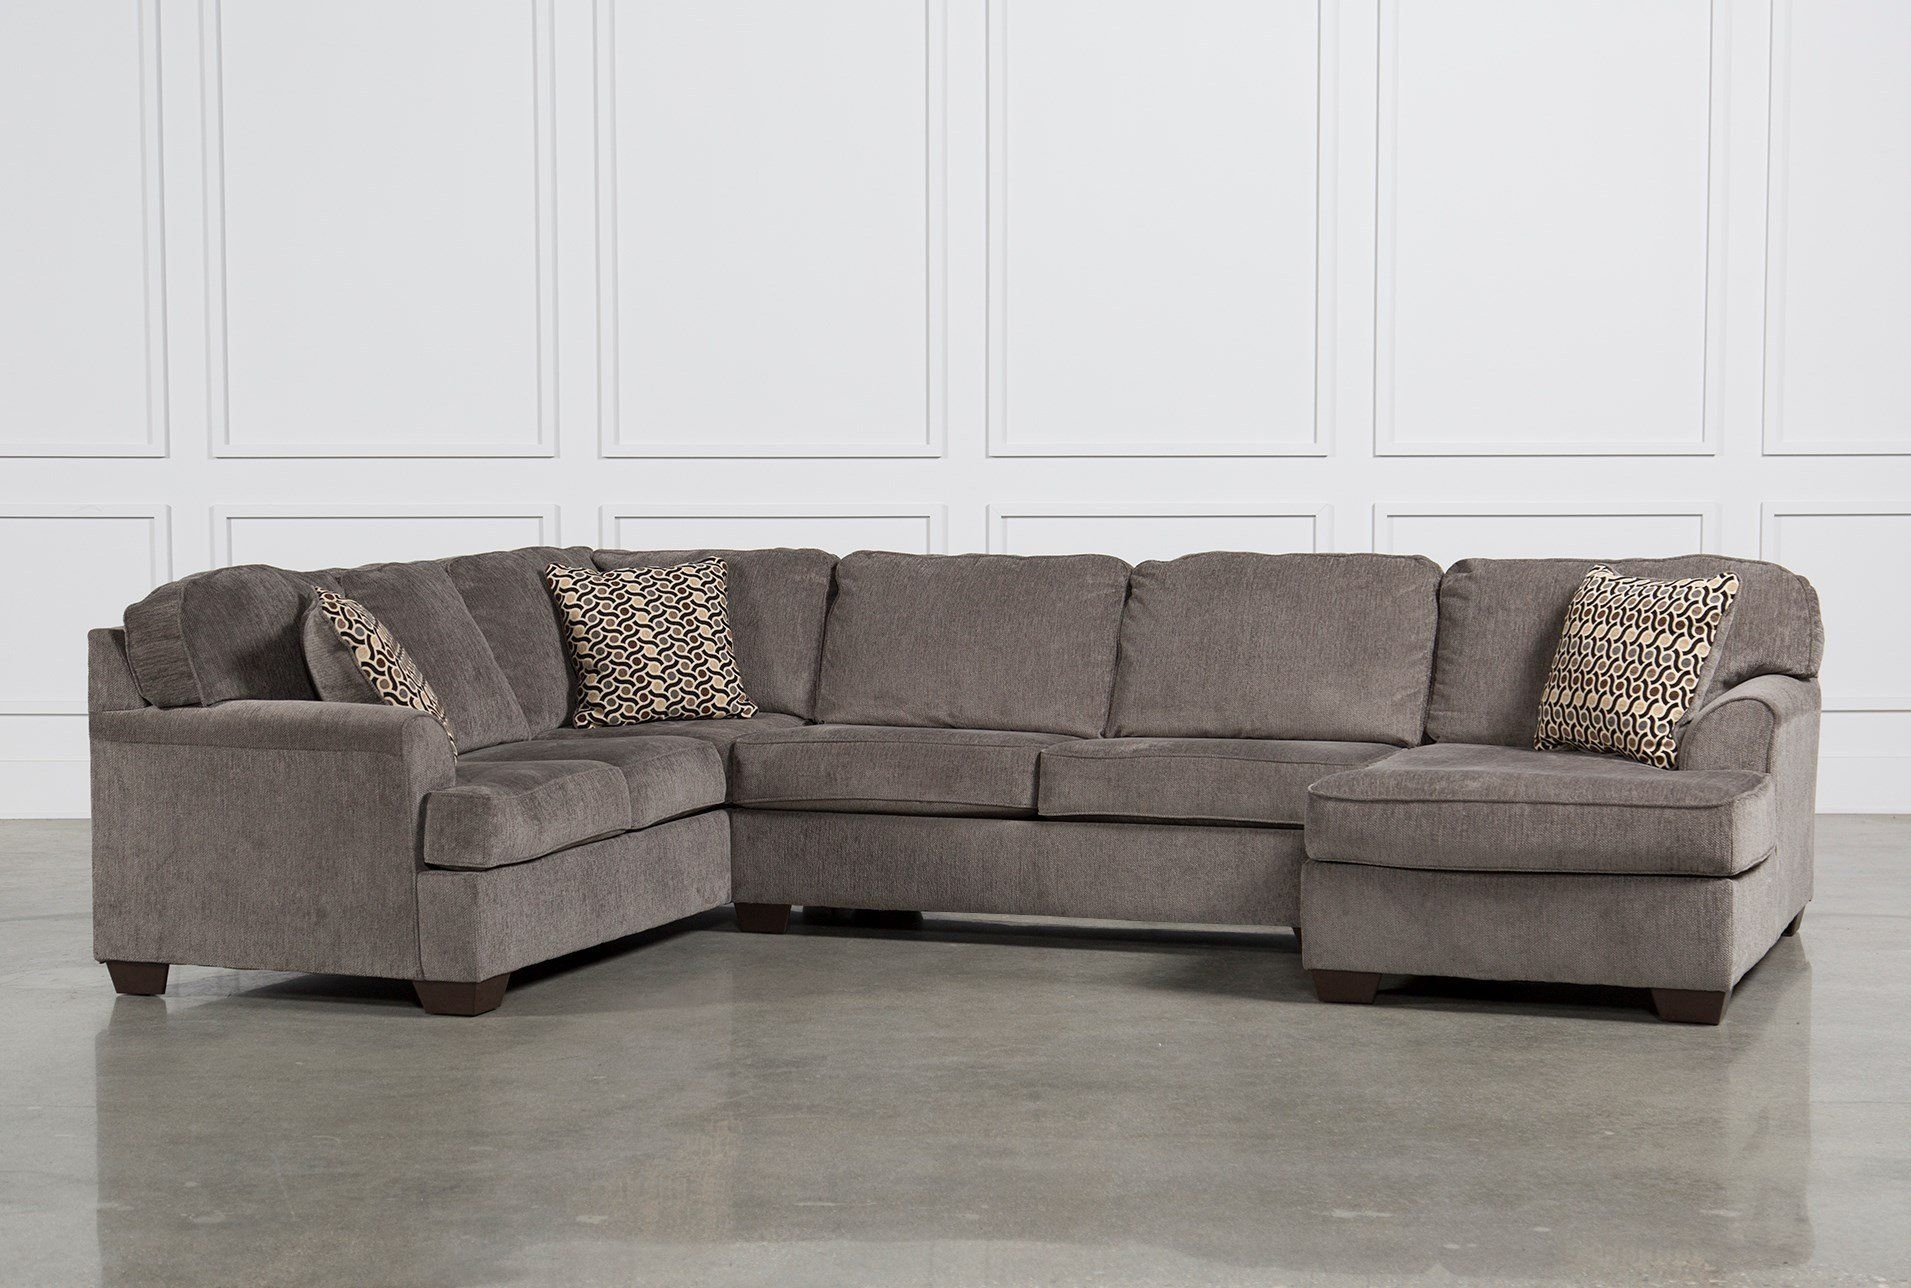 Loric Smoke 3 Piece Sectional W/raf Chaise | Upholstery, Pillows And Pertaining To Meyer 3 Piece Sectionals With Raf Chaise (Image 14 of 25)